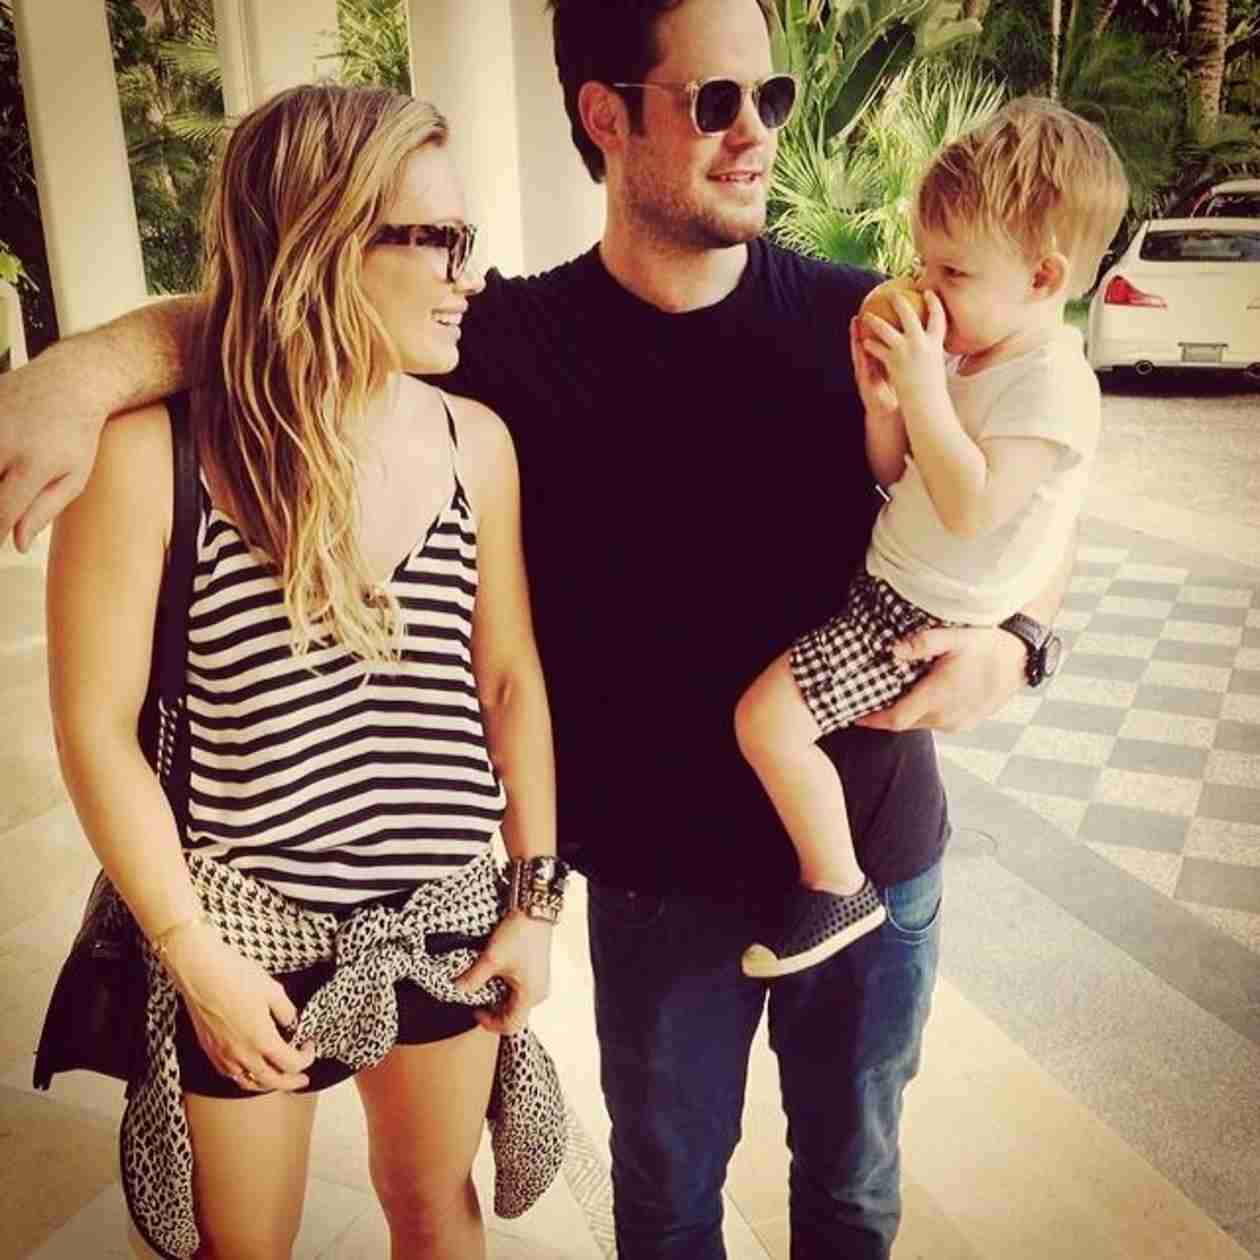 How Is Hilary Duff Co-Parenting With Estranged Husband Mike Comrie? (PHOTO)